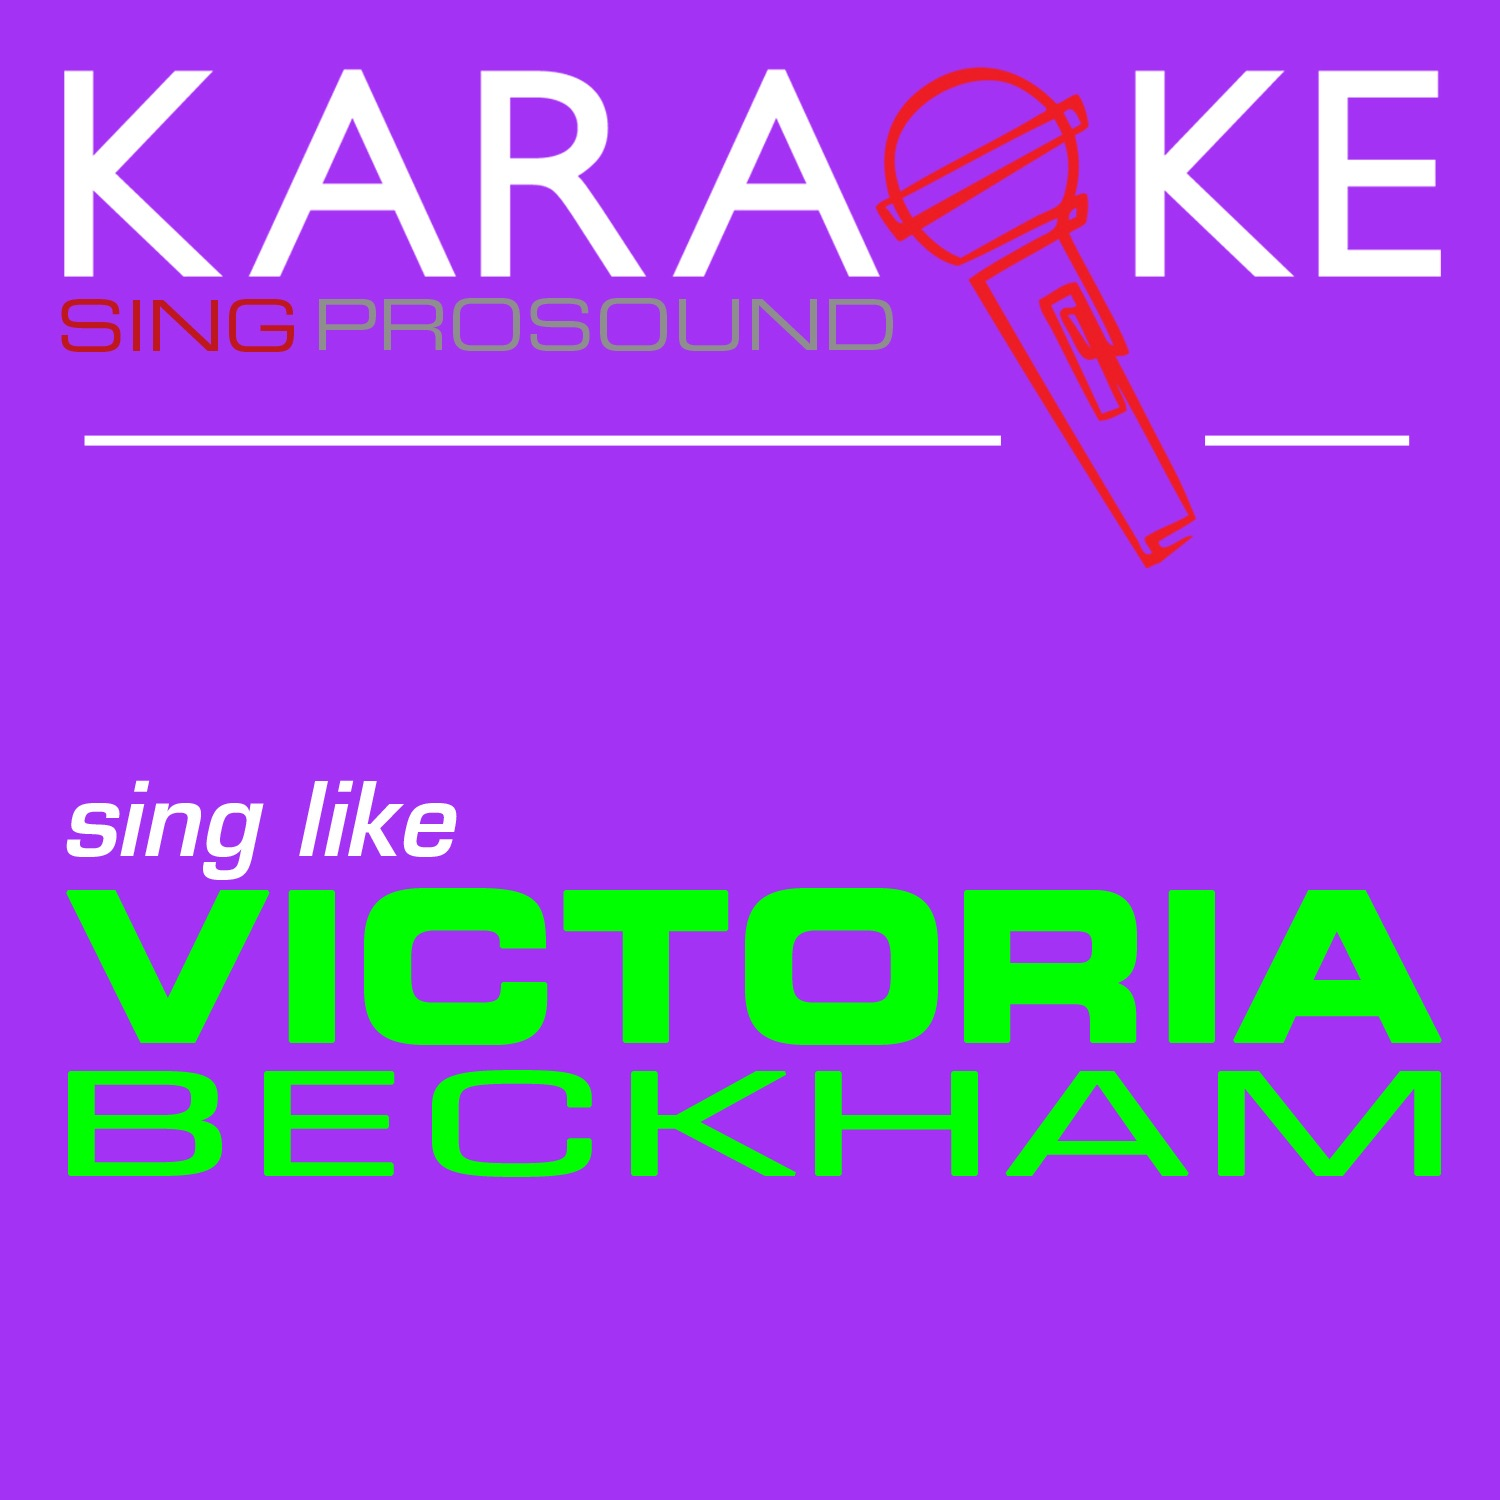 Karaoke in the Style of Victoria Beckham - Single